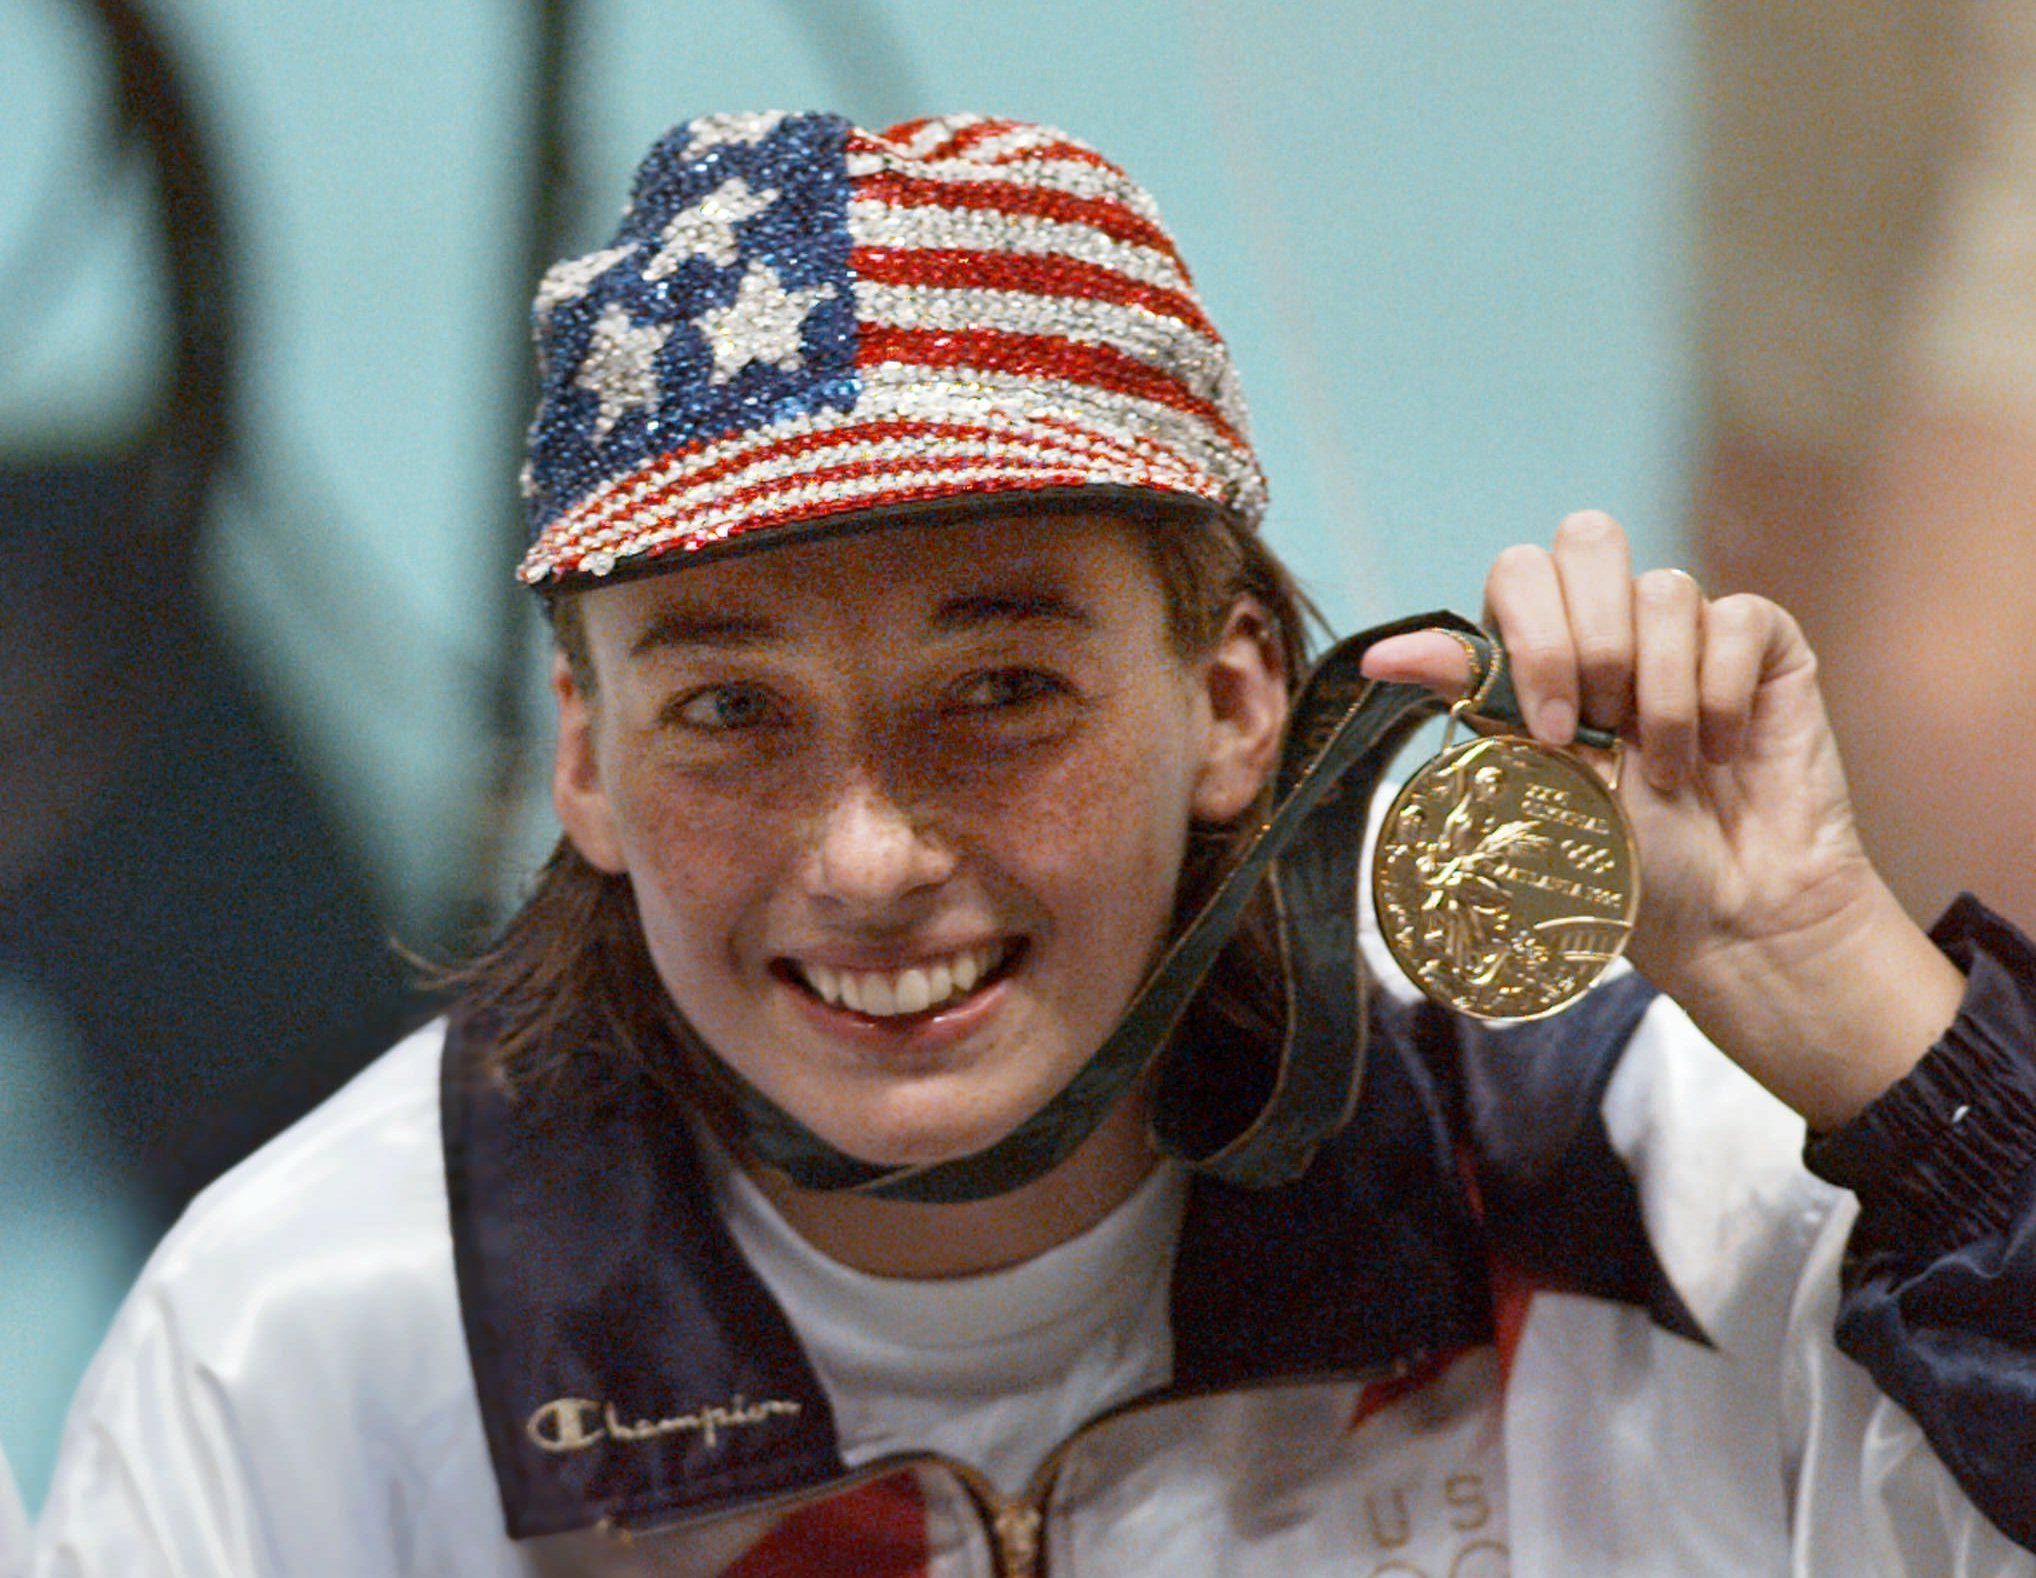 Forum on this topic: Bryce Dallas Howard, amy-van-dyken-6-olympic-medals/